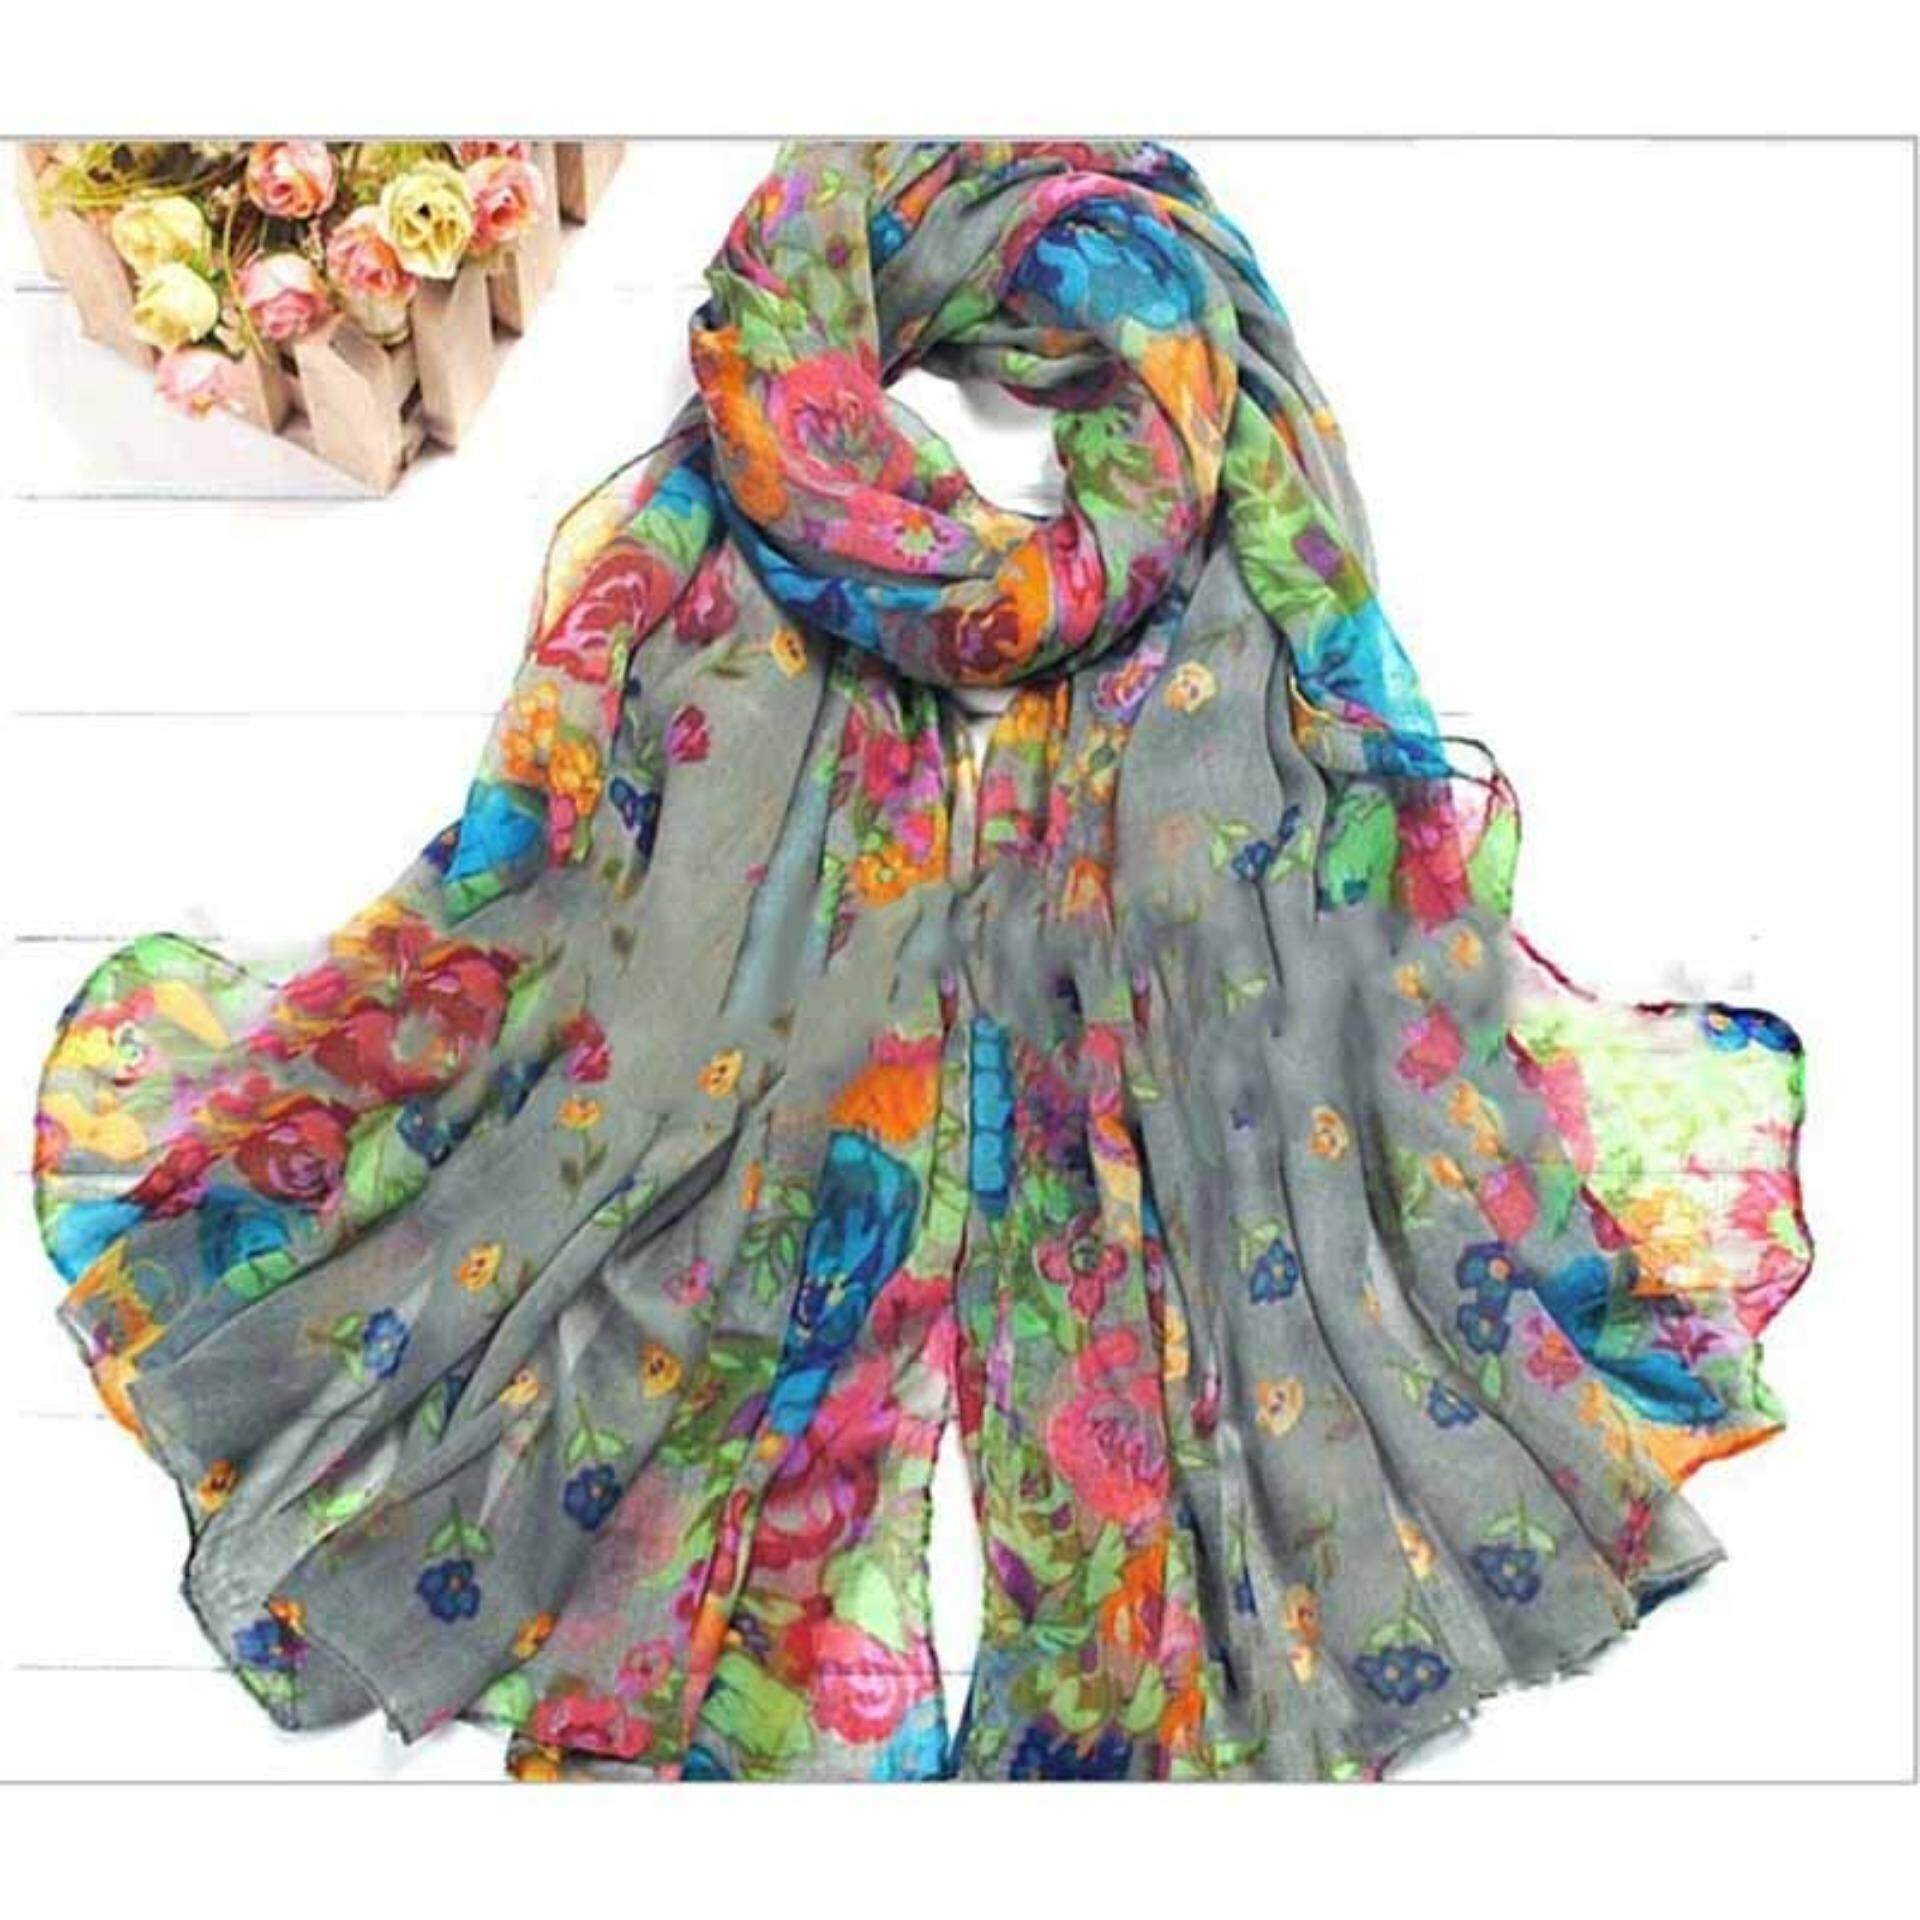 Fashionable Women Ladies Floral Flower Scarf Shawl Stole Wrap Scarves - Intl By Family Flower.